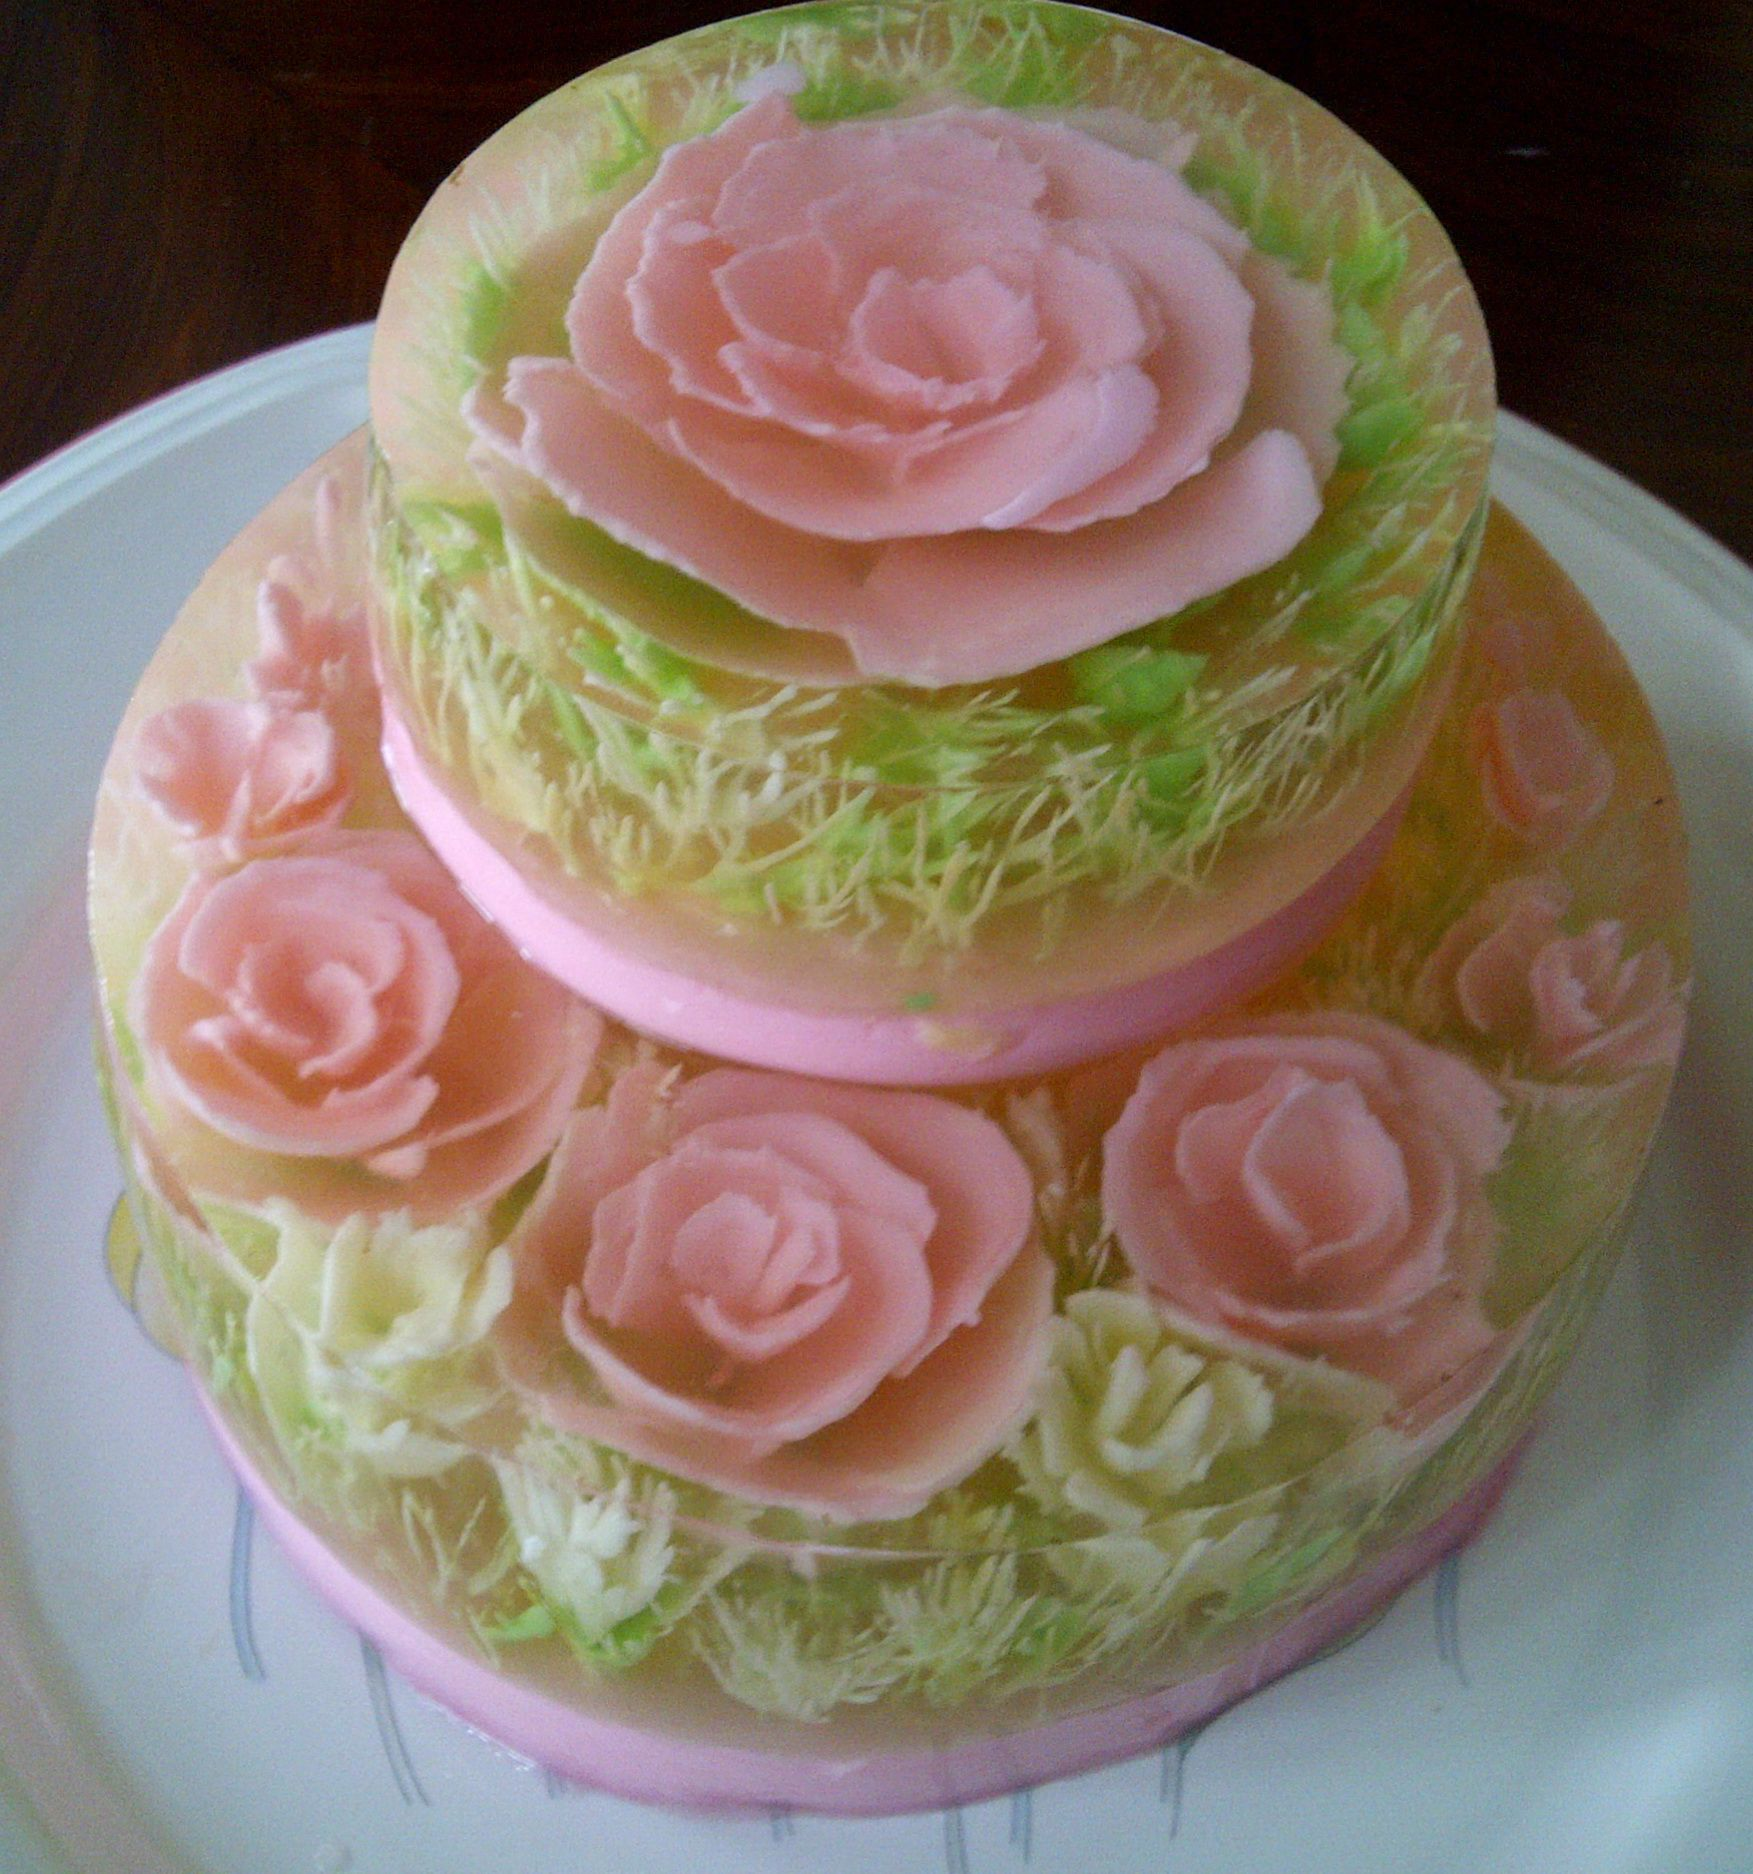 Pink Roses In 2 Tiers Jelly Art Jelly Jello Cake 3d